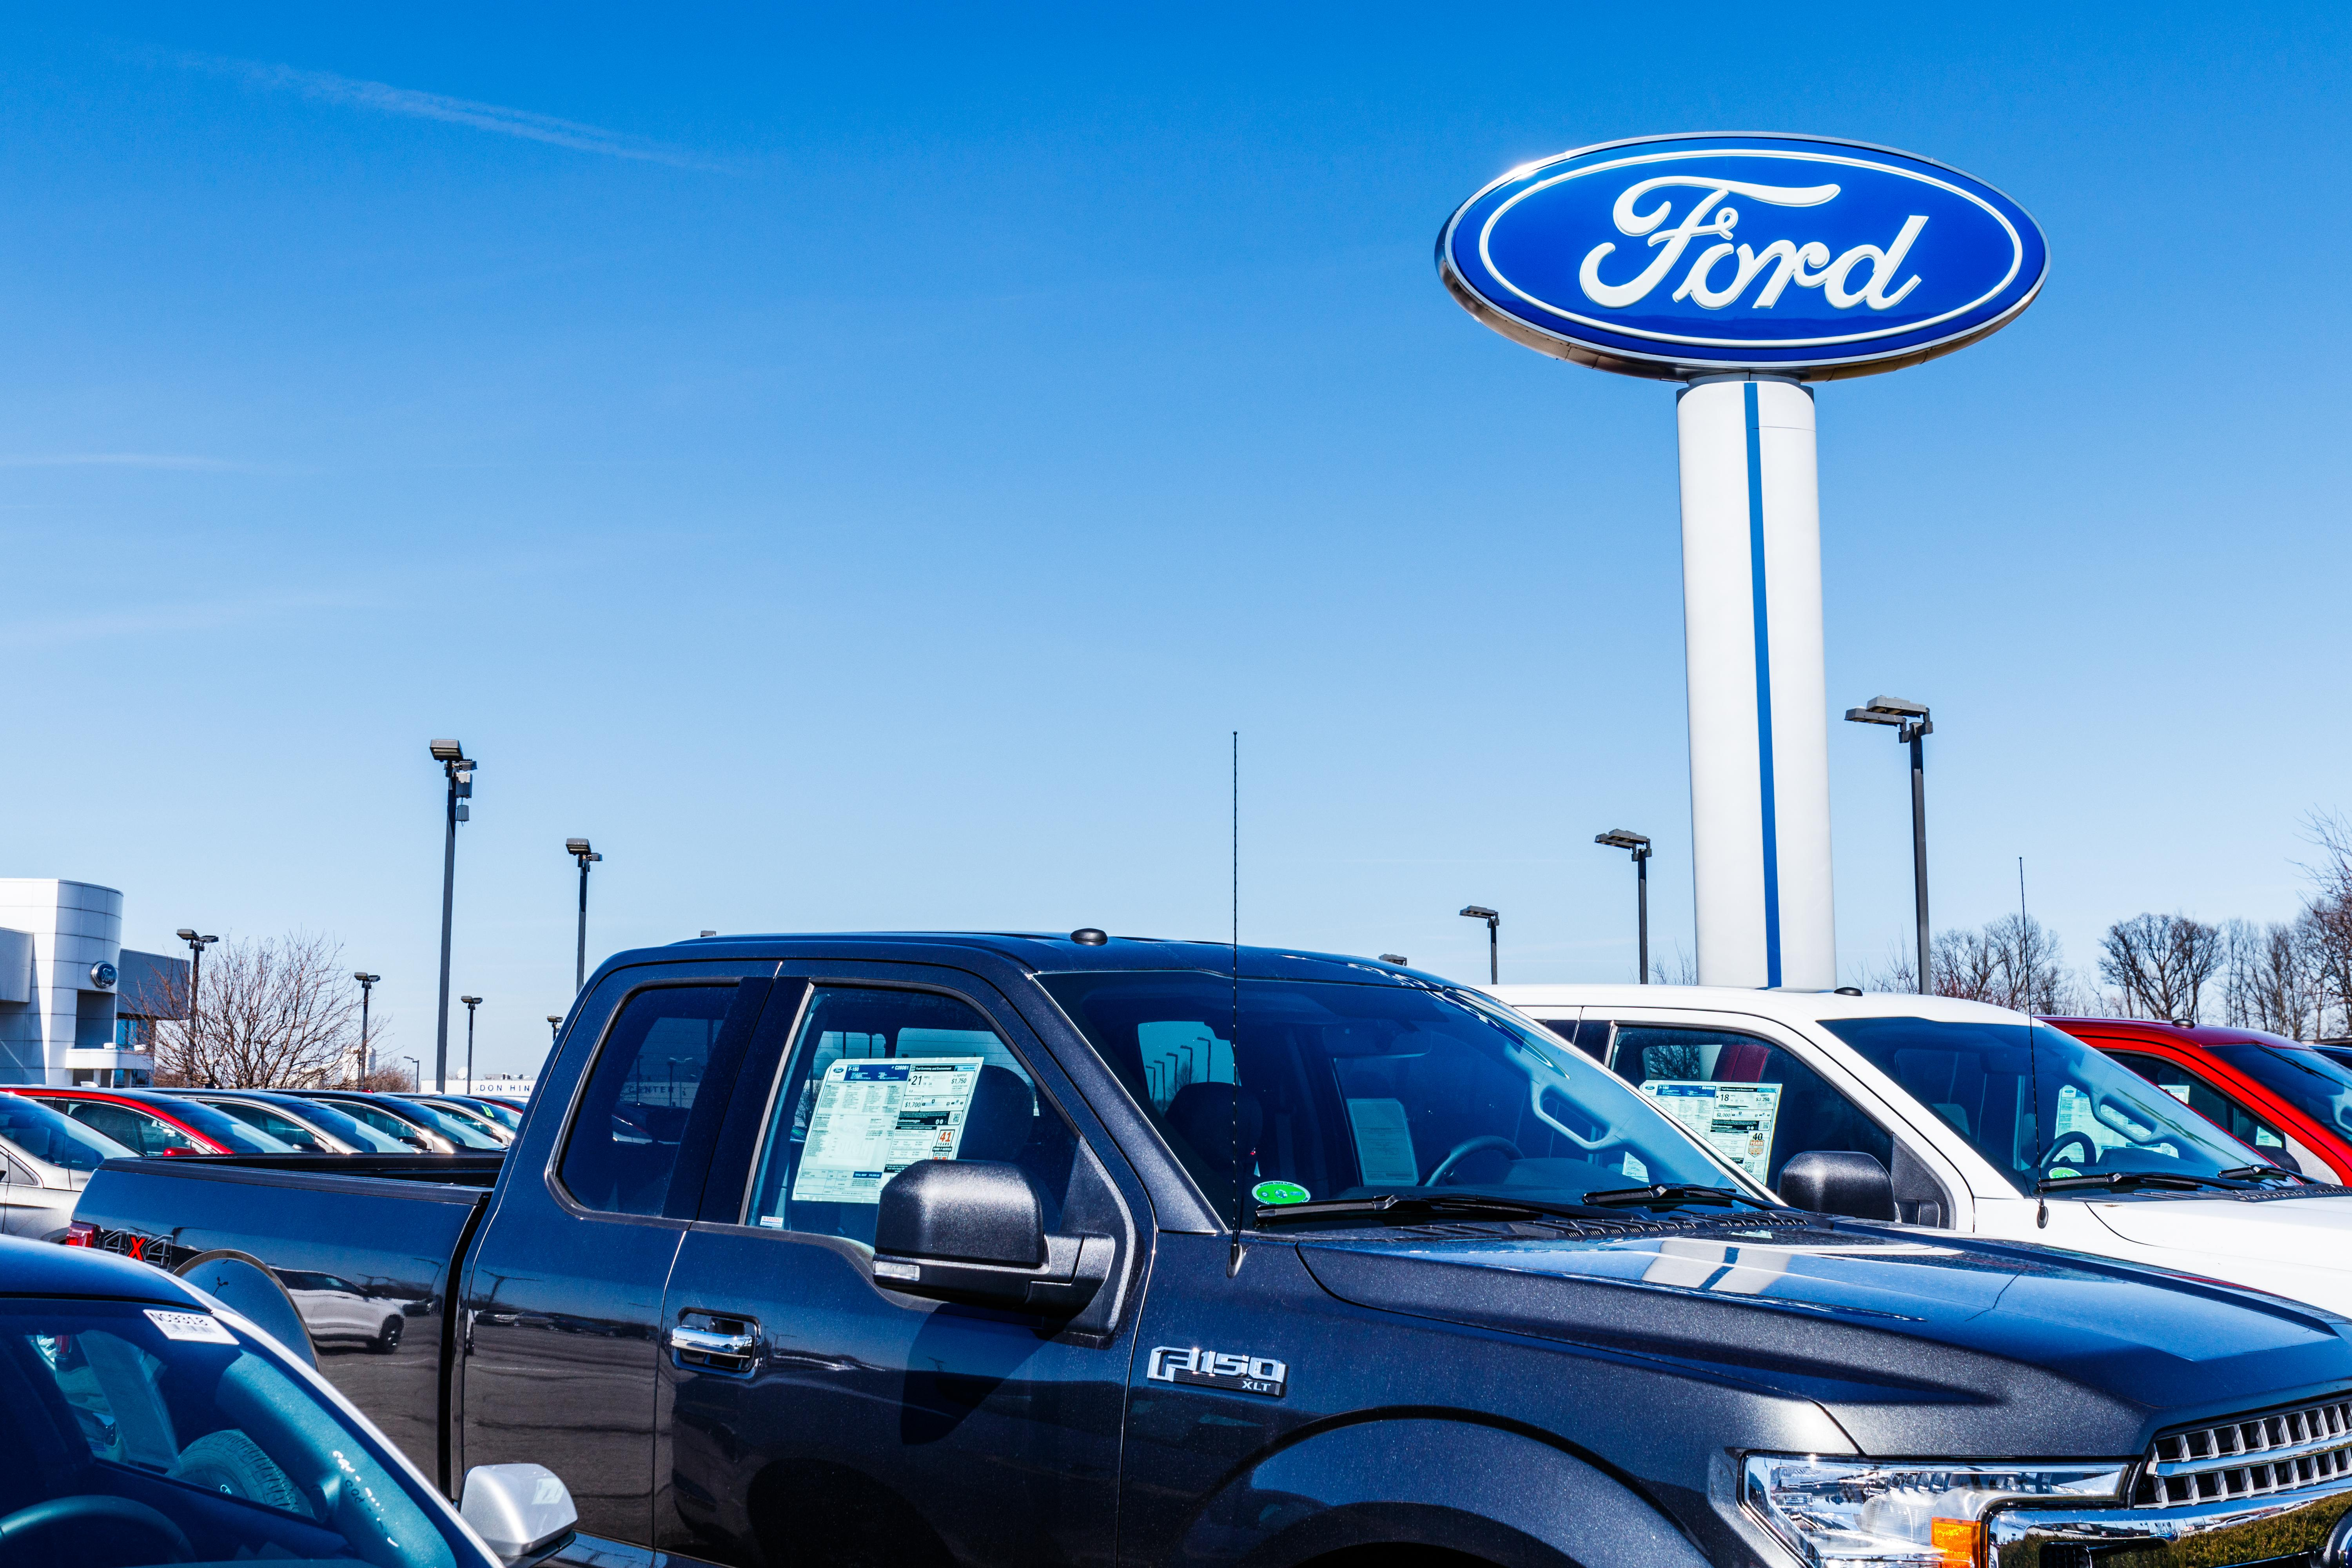 Moody's downgrades Ford to 'junk' status